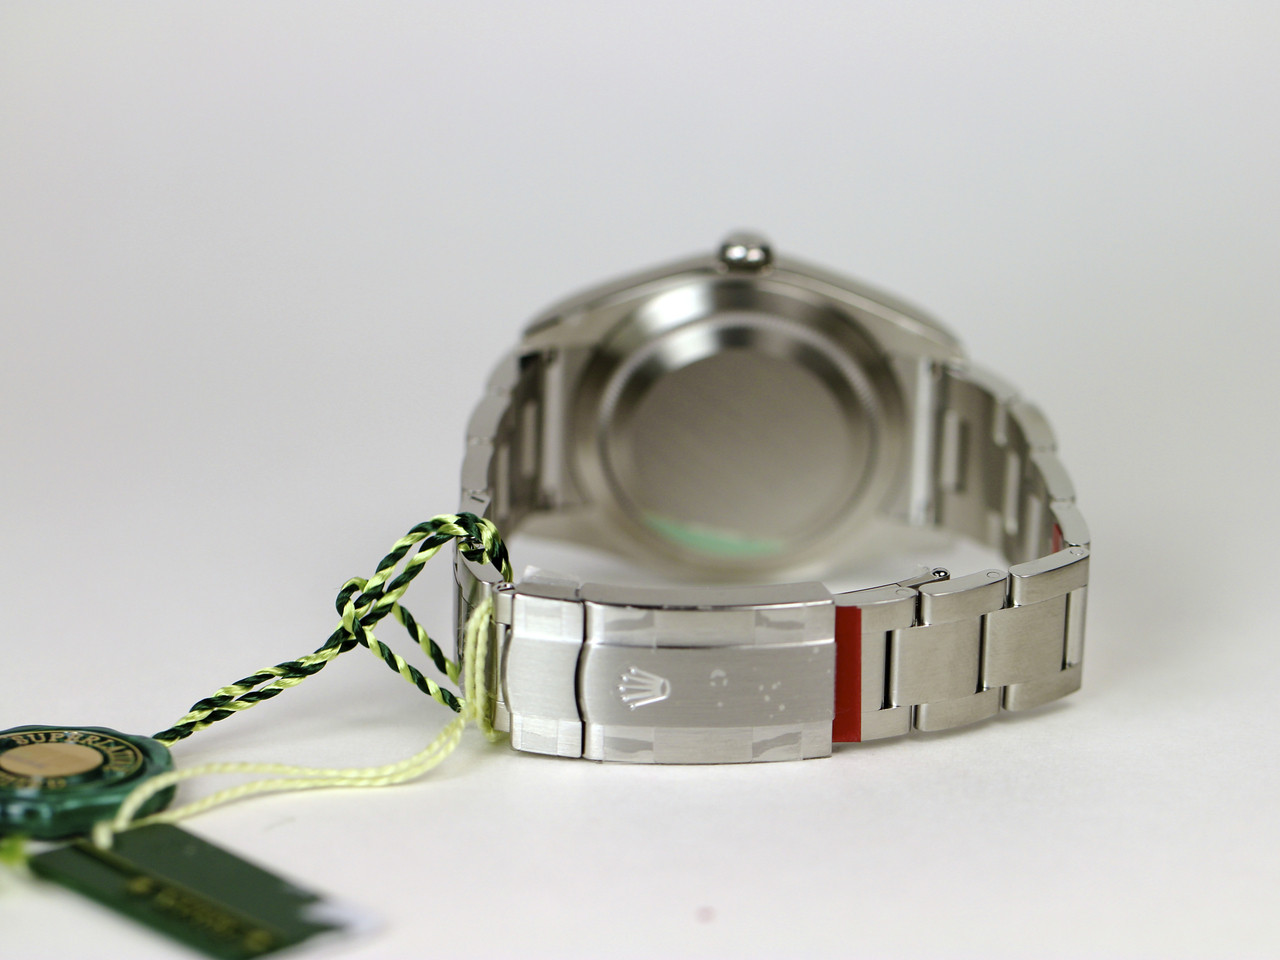 Oysterclasp - Rolex Watch - Oyster Perpetual 39 Blue 114300 - New for sale online www.Legendoftime.com and in store Legend of Time - Chicago Watch Center